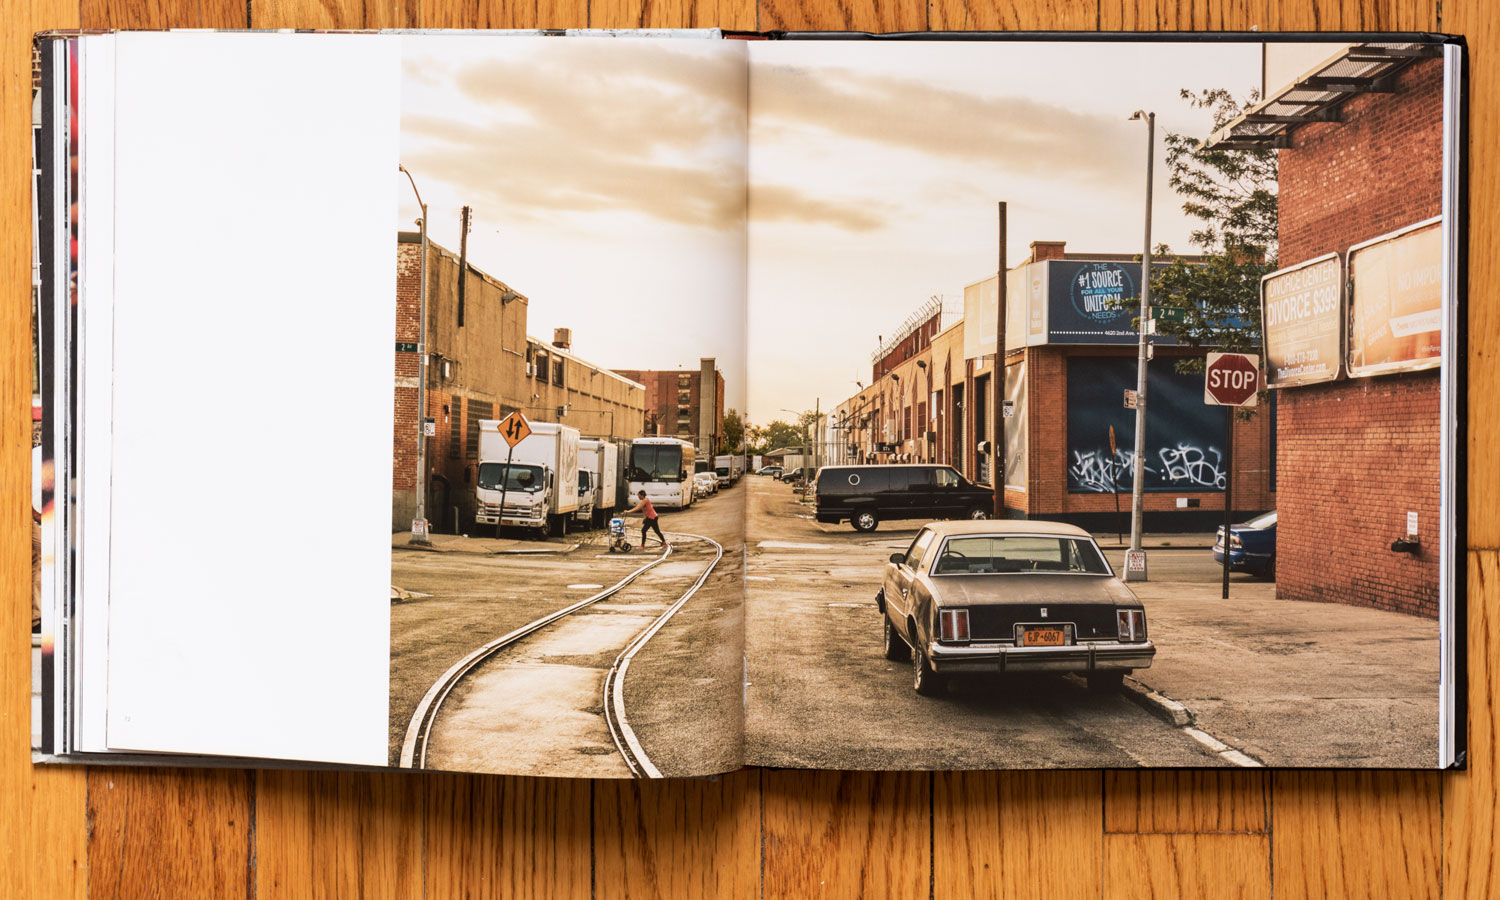 July on 2nd Avenue by My Studio in Sunset Par k. Pages 72–73. © harlan erskine 2018.